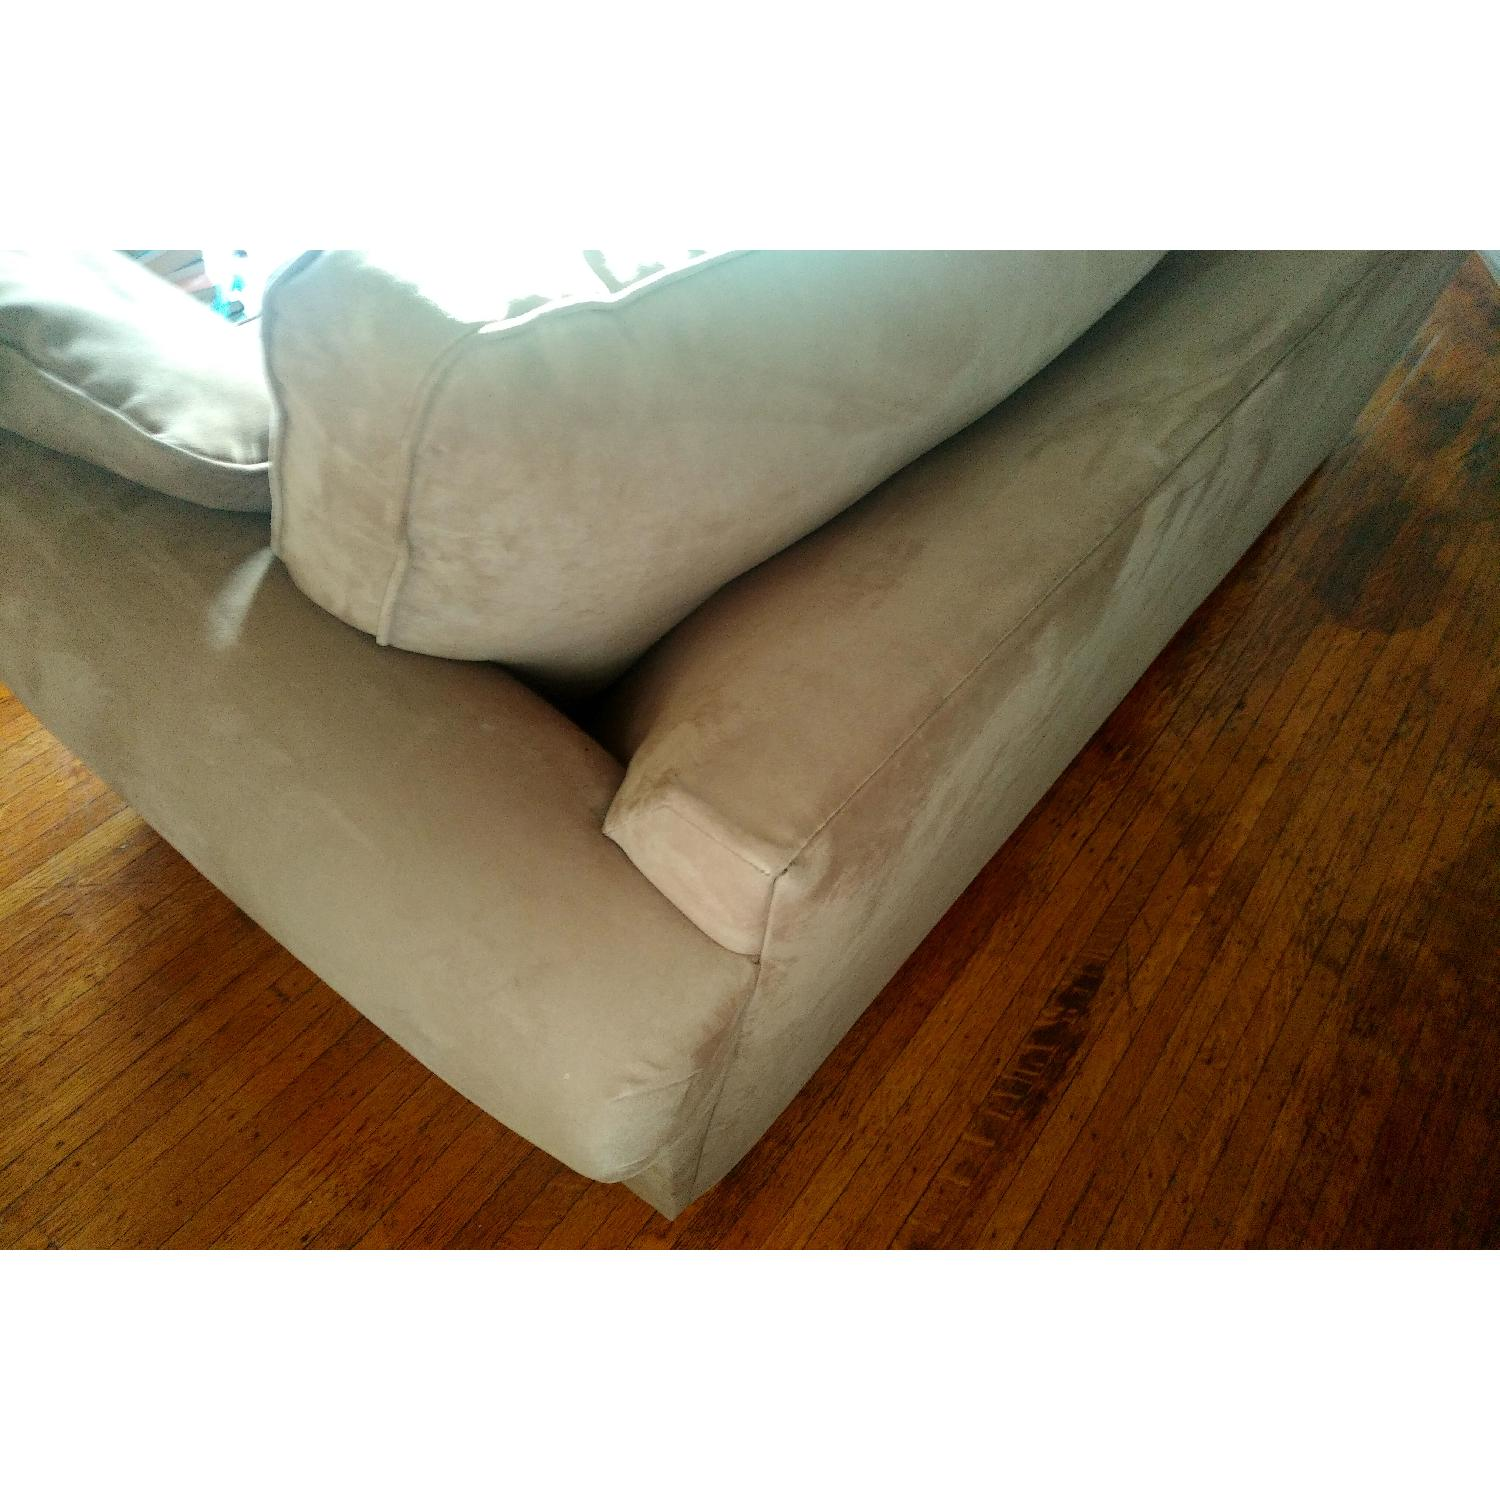 Micro-suede couch with hidden sofa bed